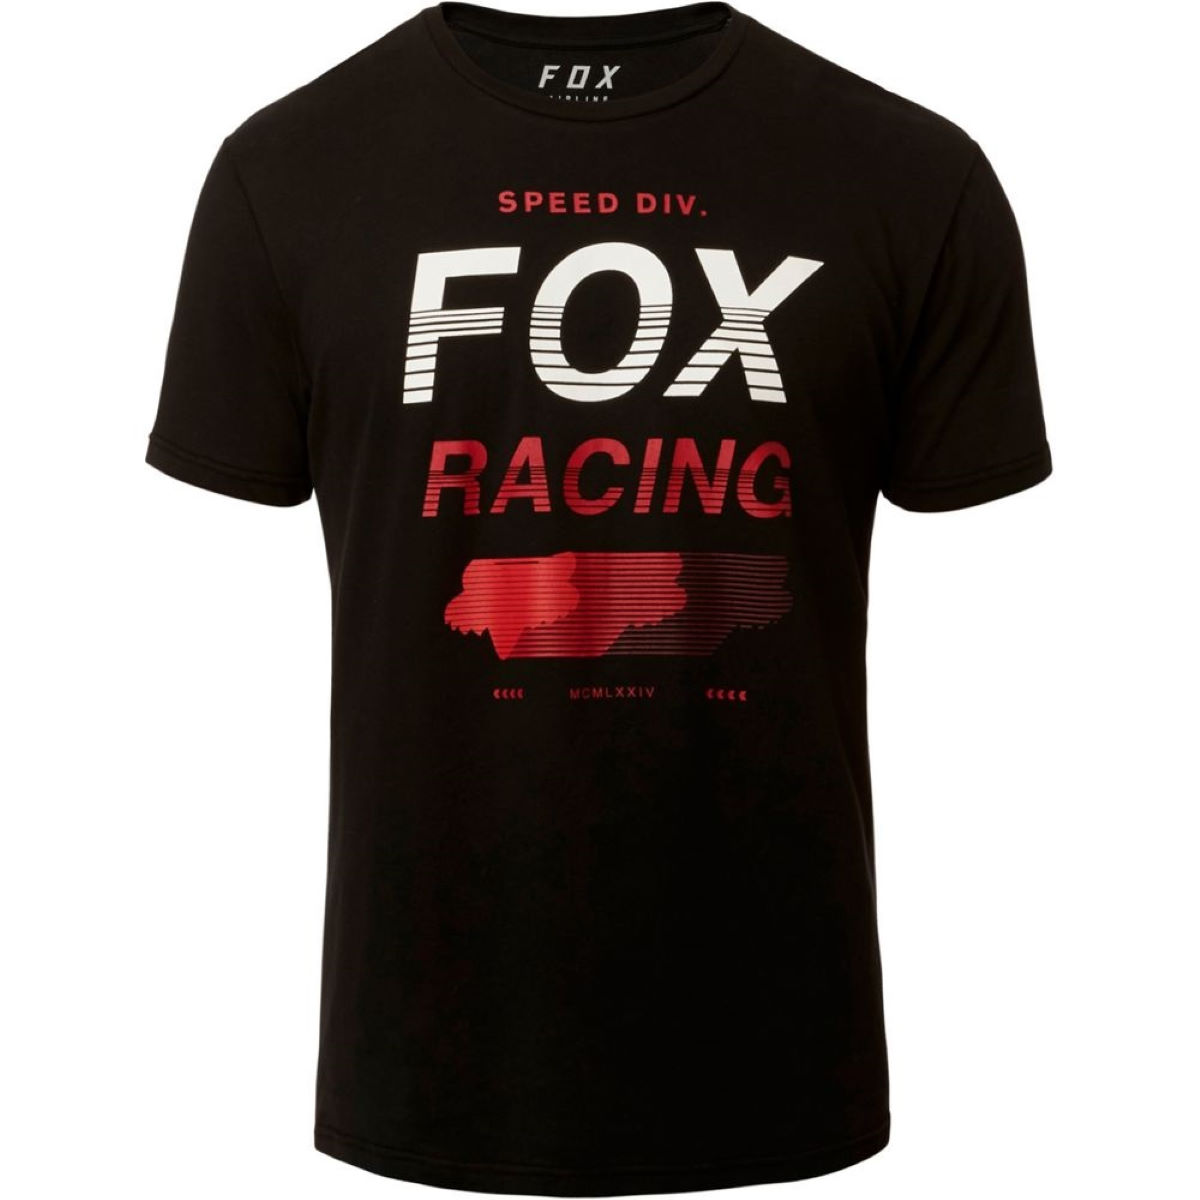 Fox Racing Unlimited Airline Tee   T-Shirts